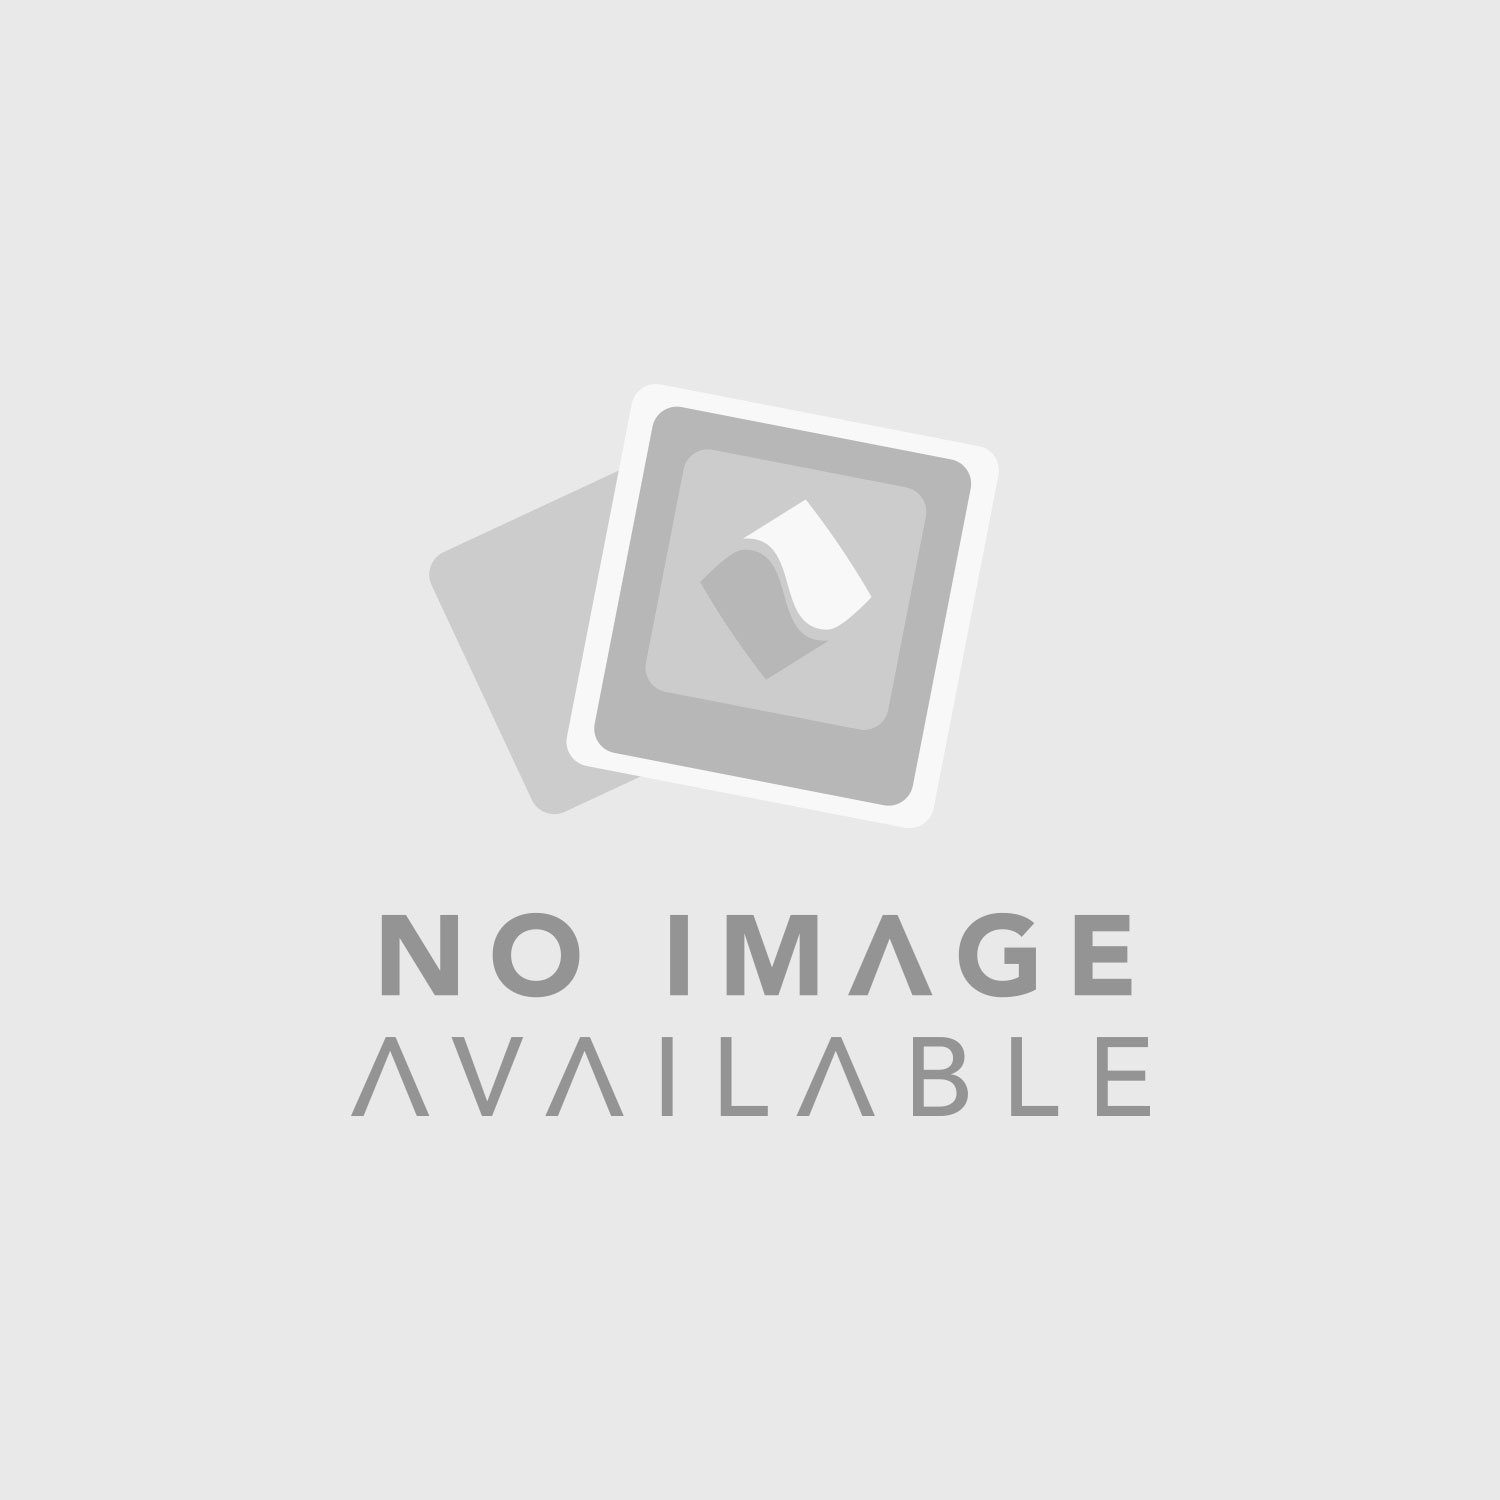 D'Addario EXL115 Electric Guitar Strings (11-49)